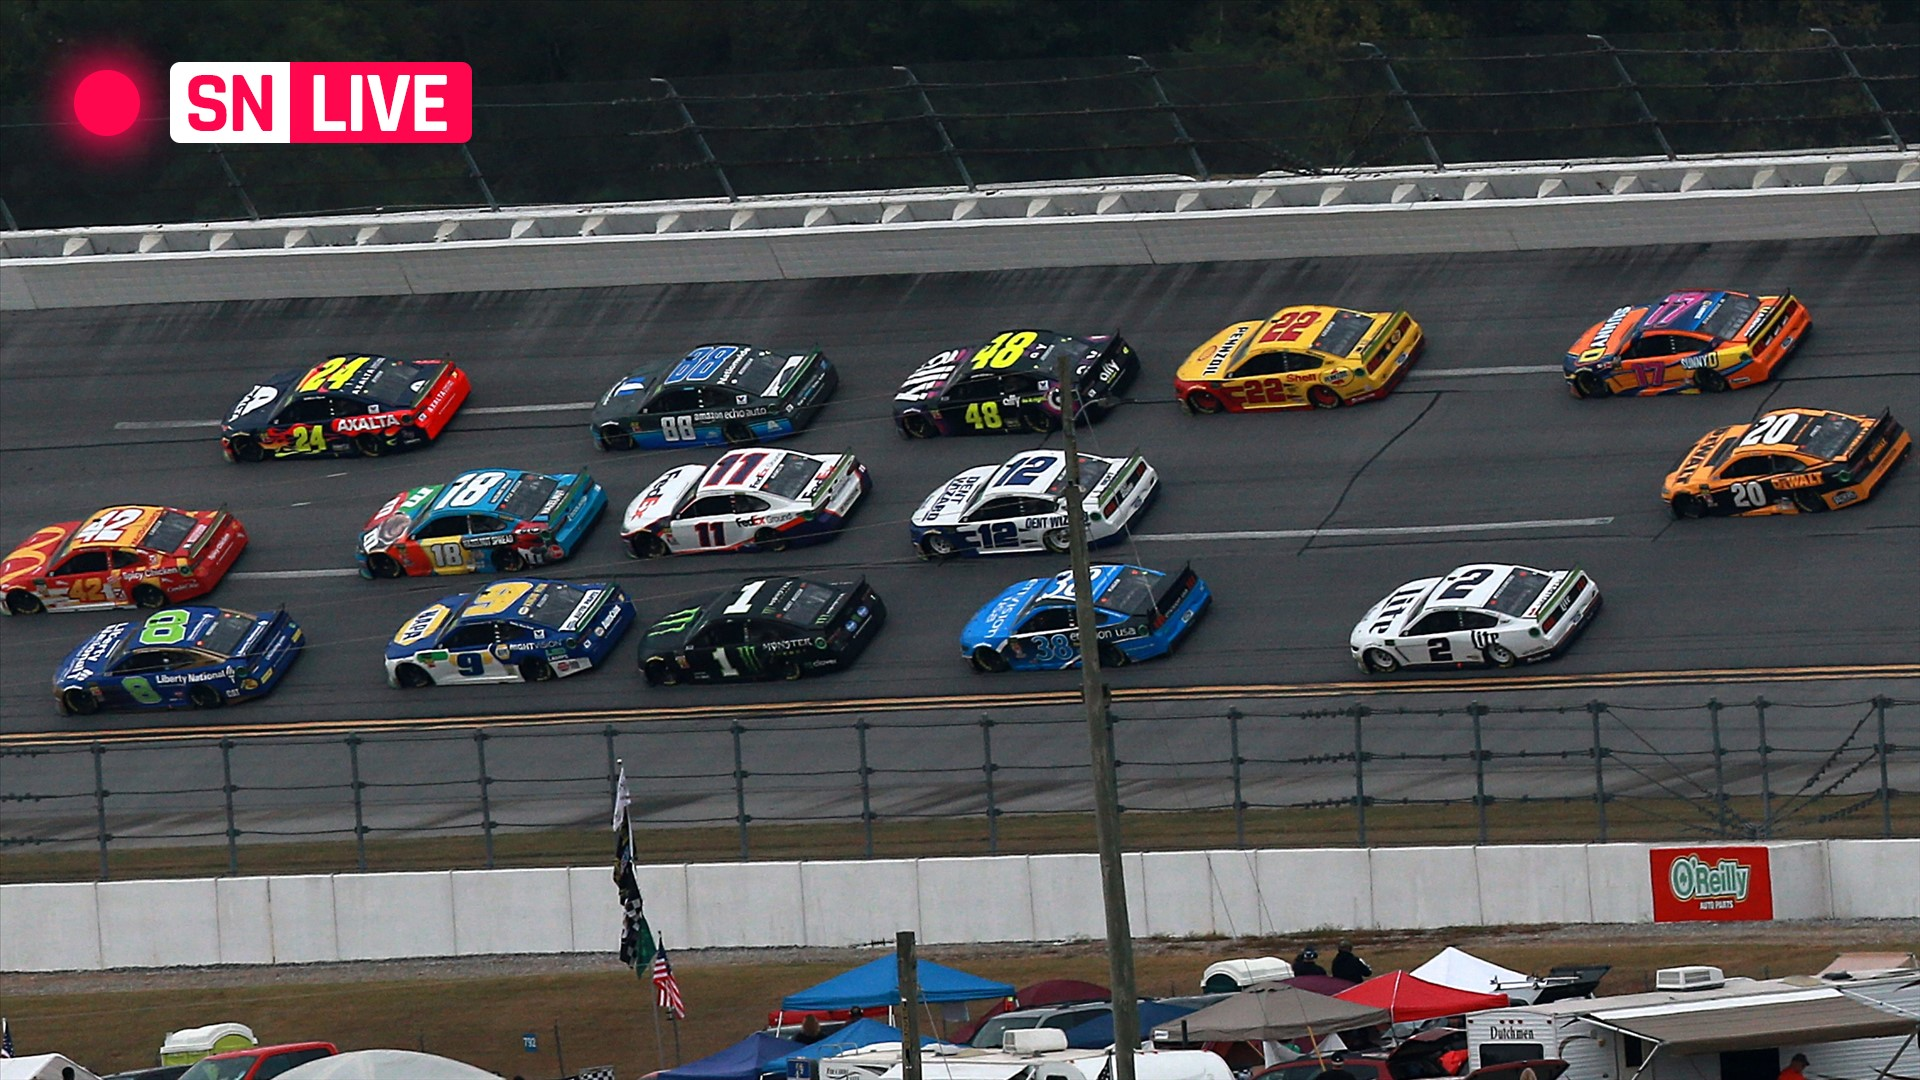 NASCAR at Talladega live race updates, results, highlights from the Geico 500